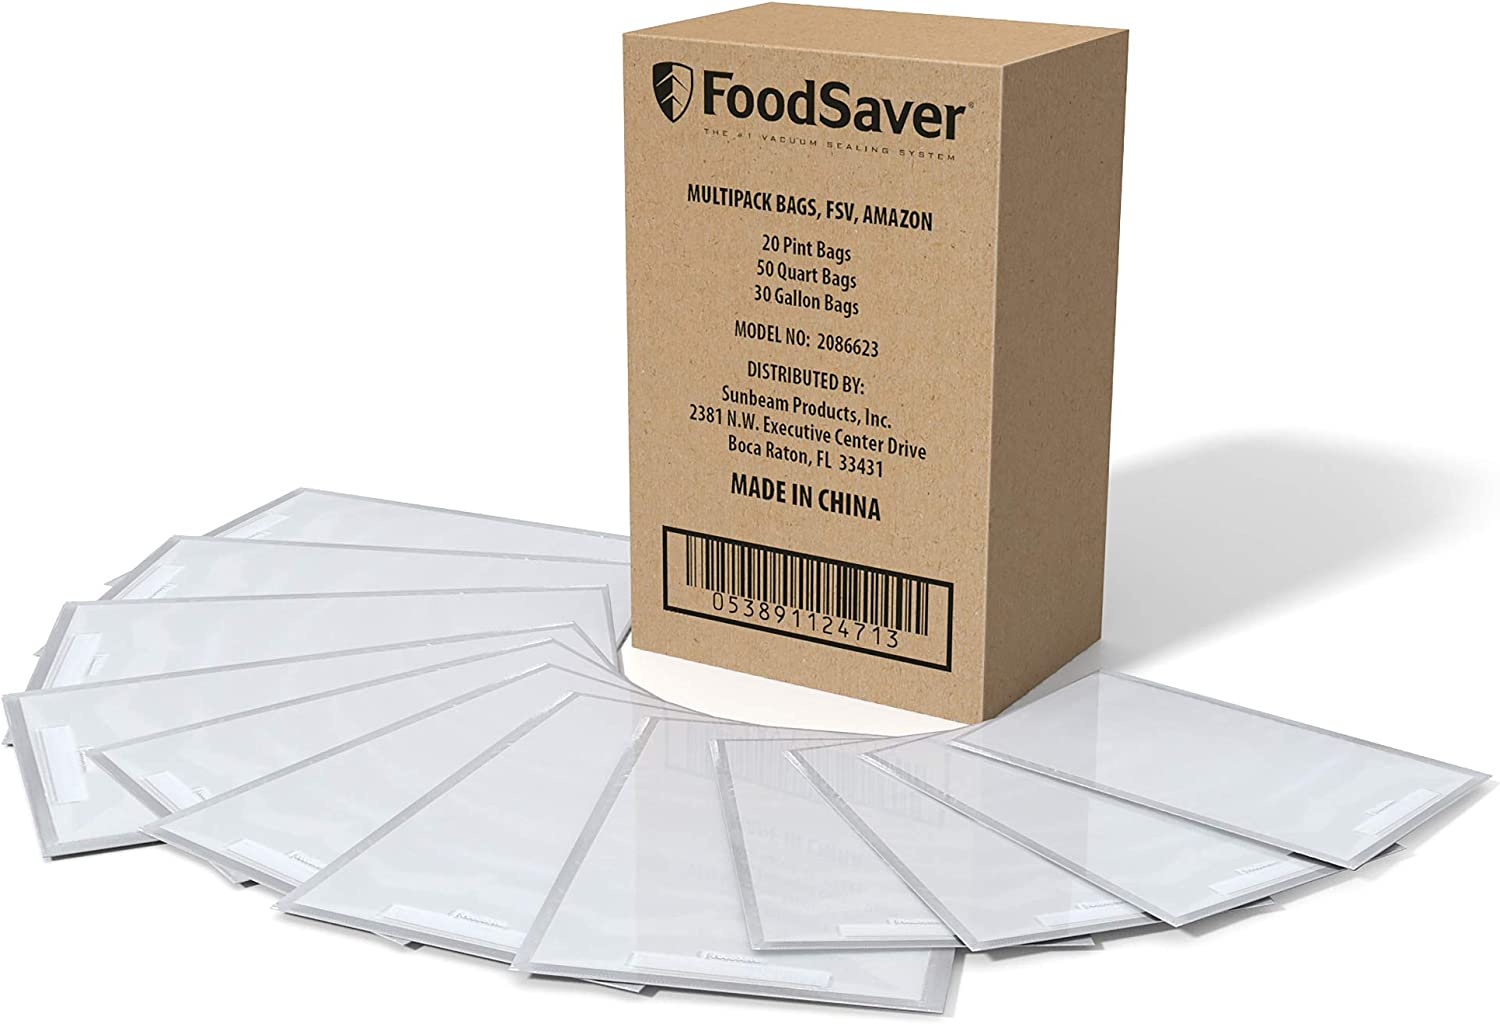 FoodSaver Vacuum Sealer, Bags Multipack, 100 Count | 20 1-Pint, 50 1-Quart, 30 1-Gallon Bags